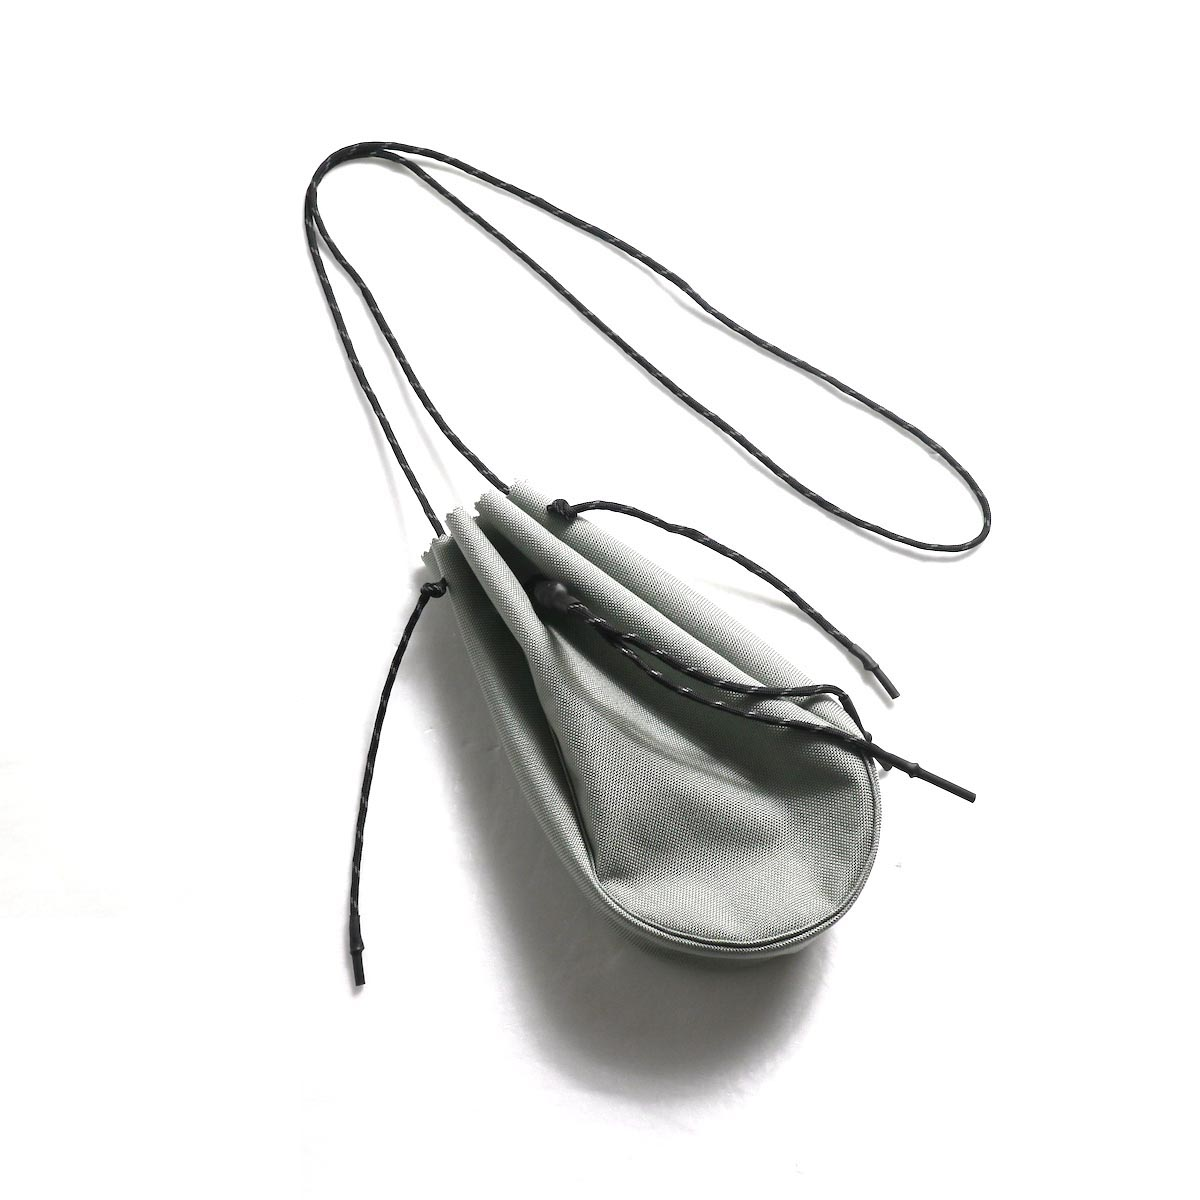 吉岡衣料店 / drawstring bag -S-. (Gray)